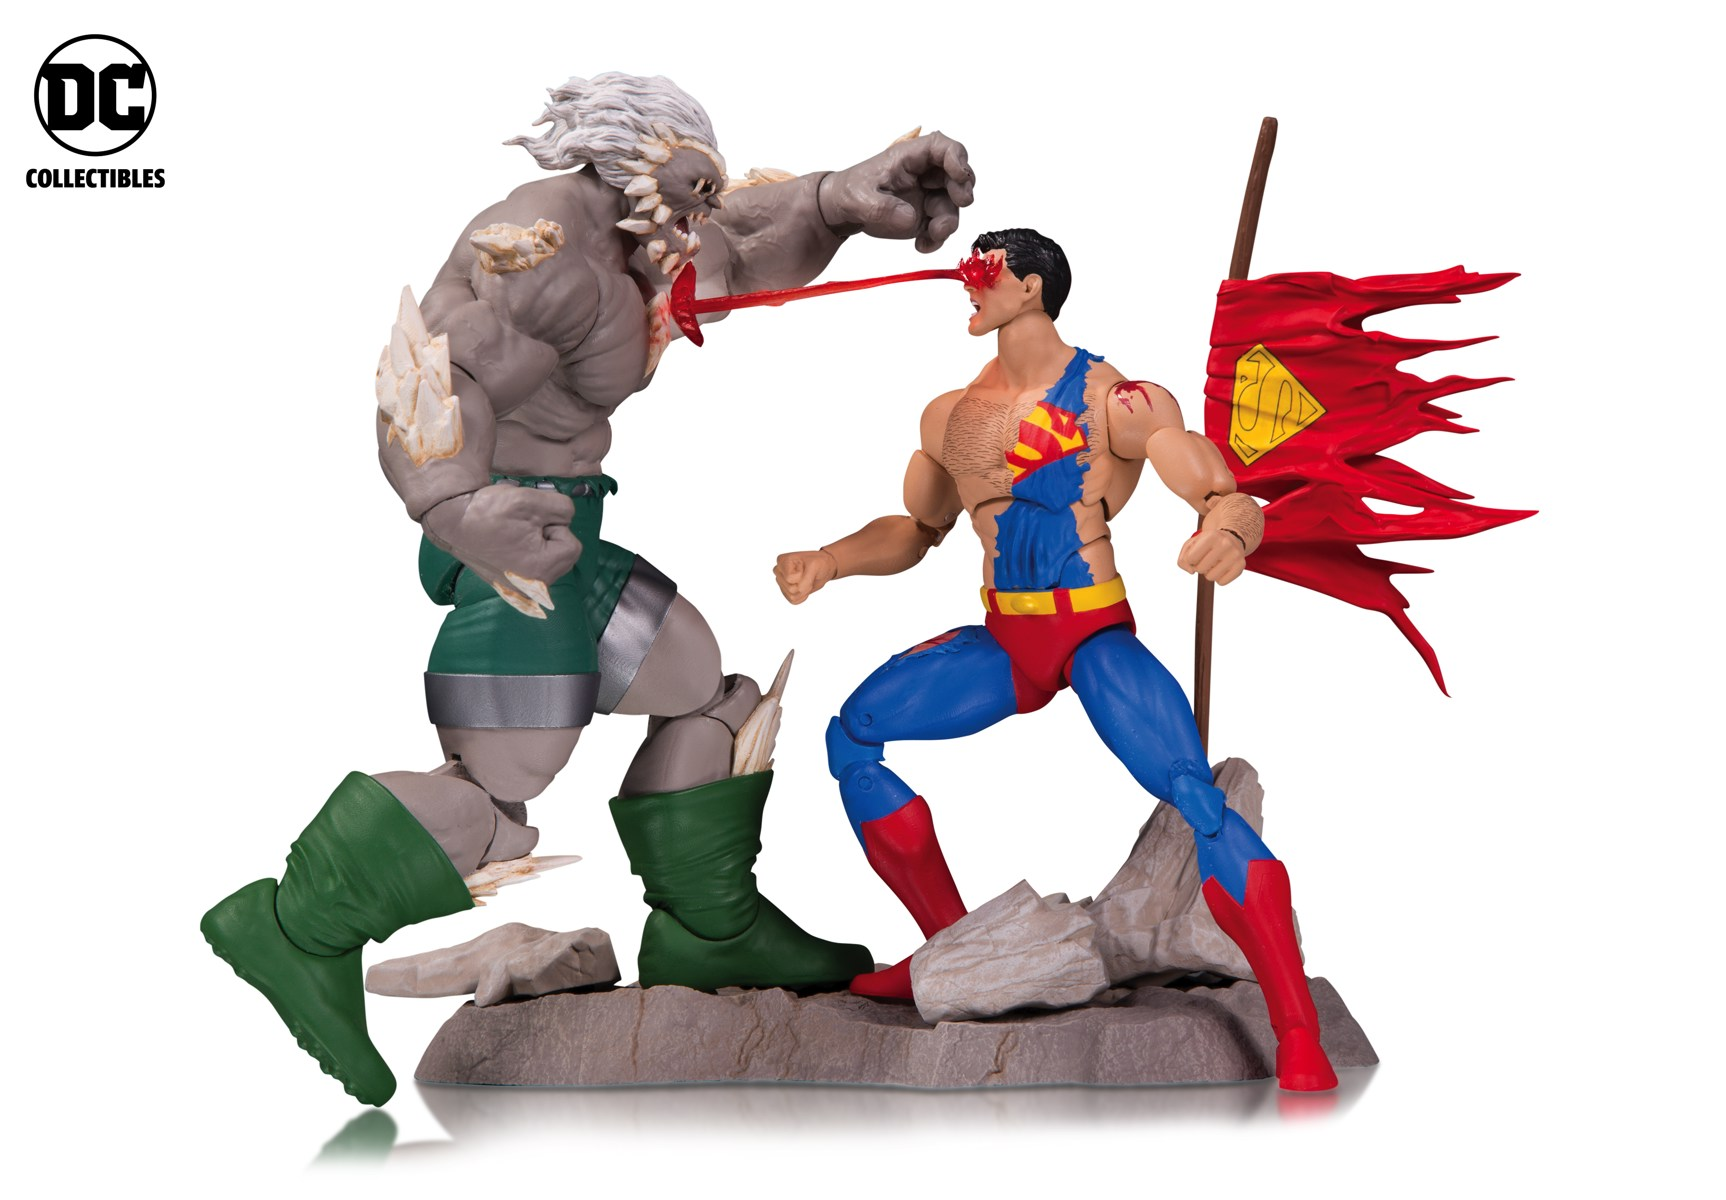 Toyland Dc Collectables Releasing Death Of Superman Figures